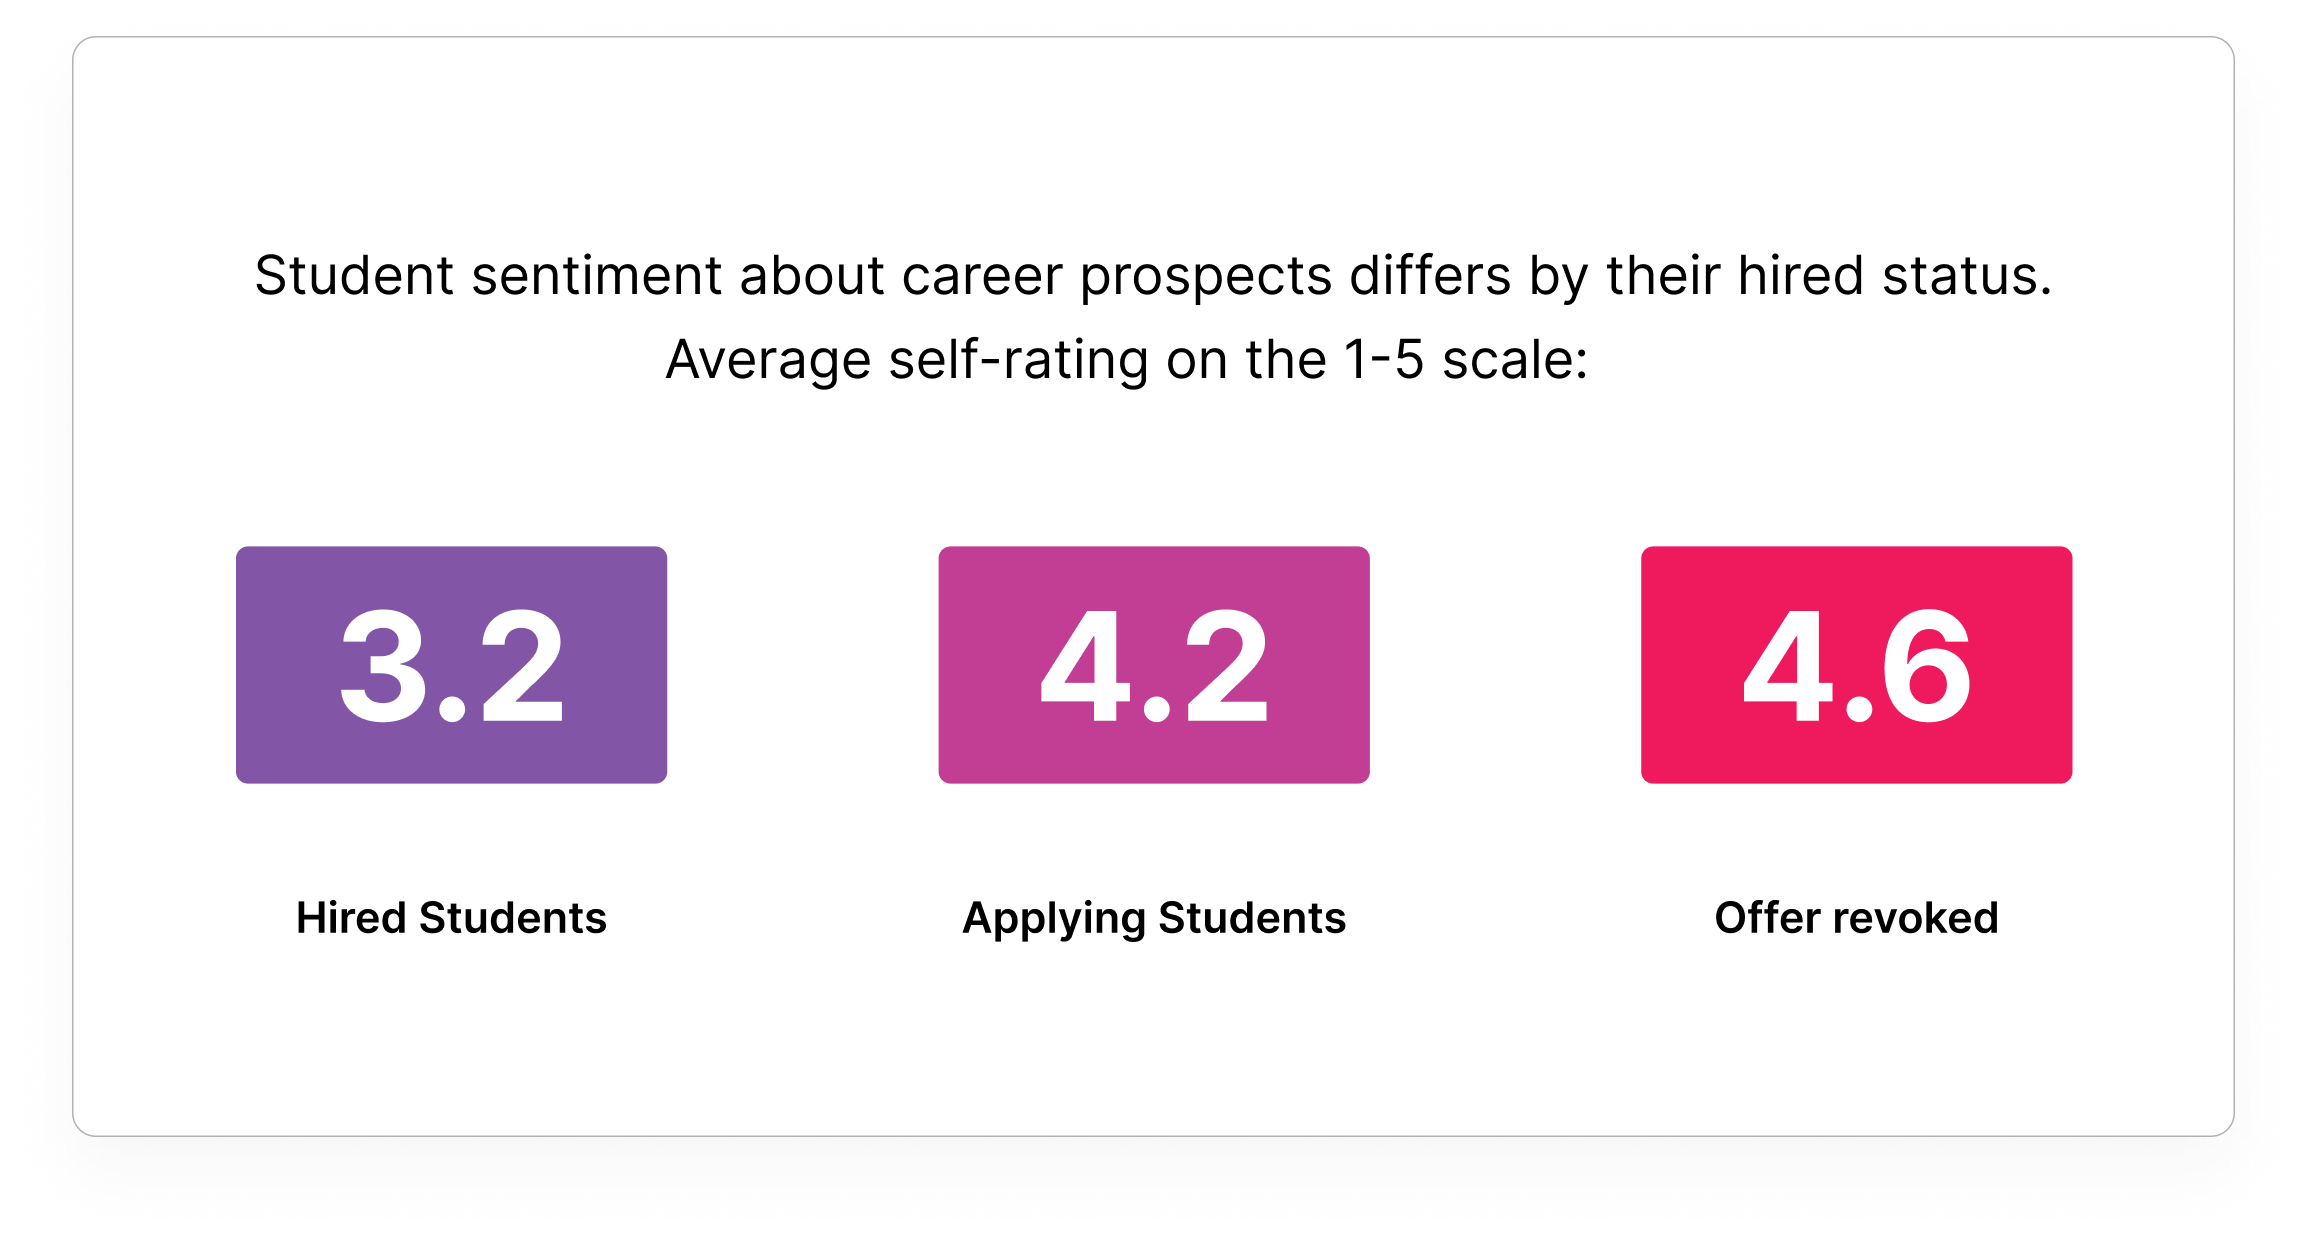 Average sentiment by student hired status